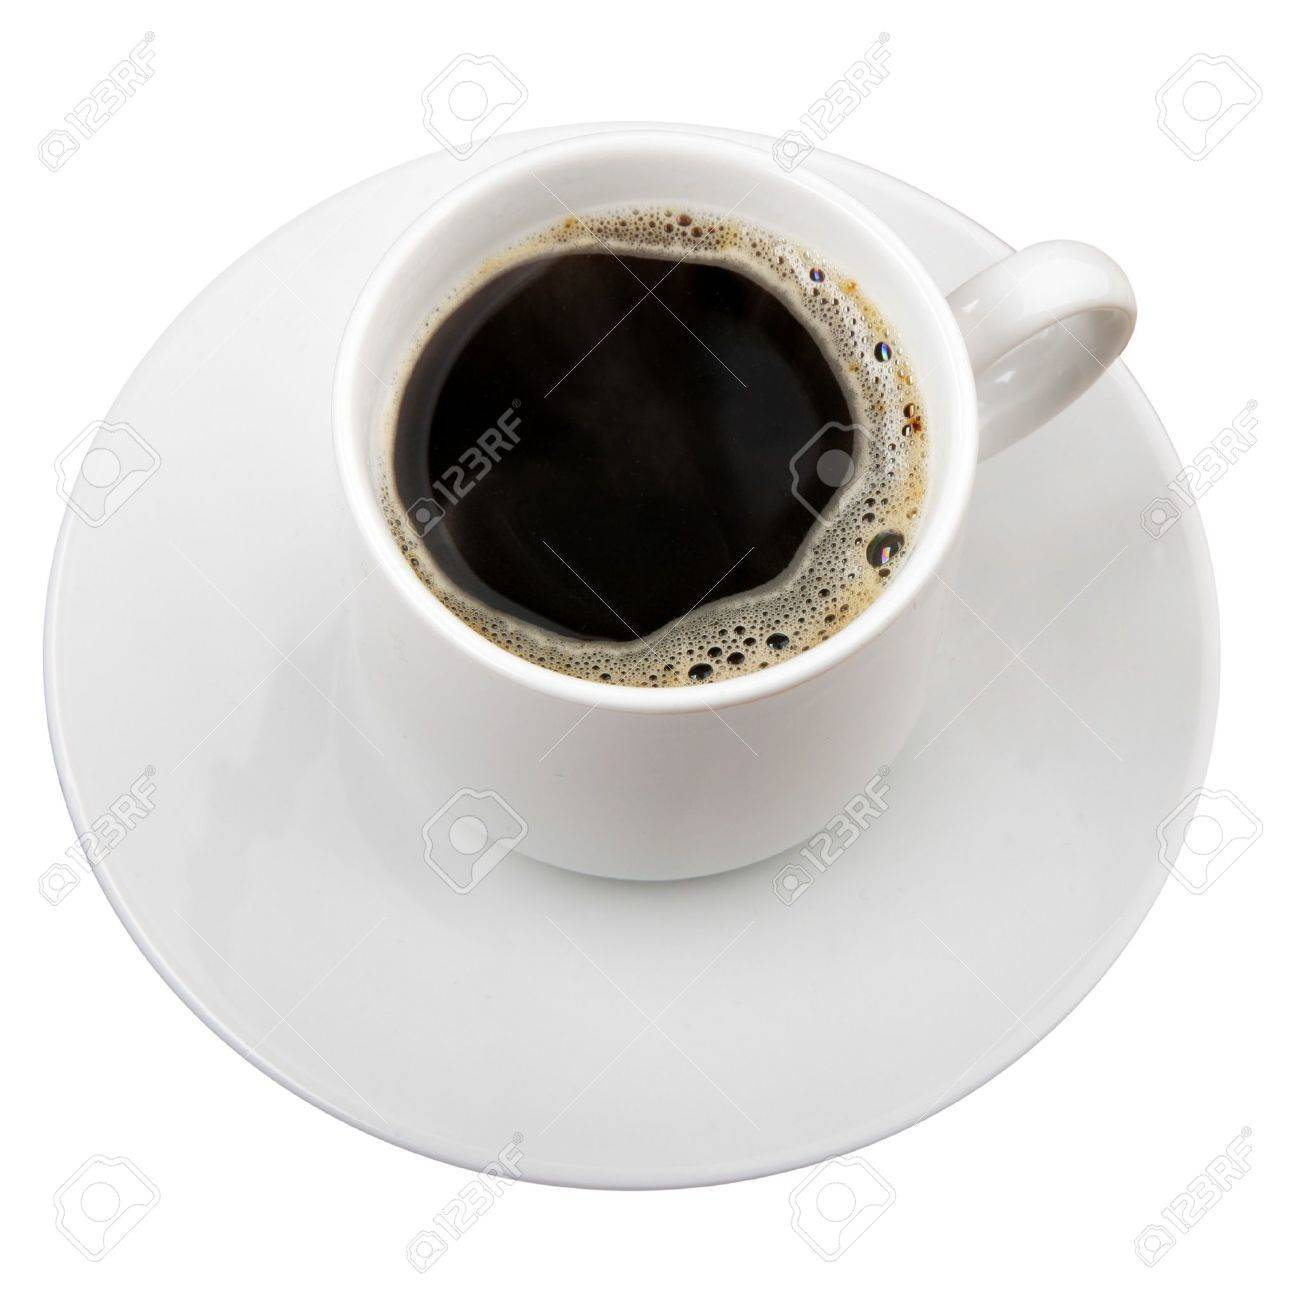 Cup of coffee isolated over white background Stock Photo - 4285105